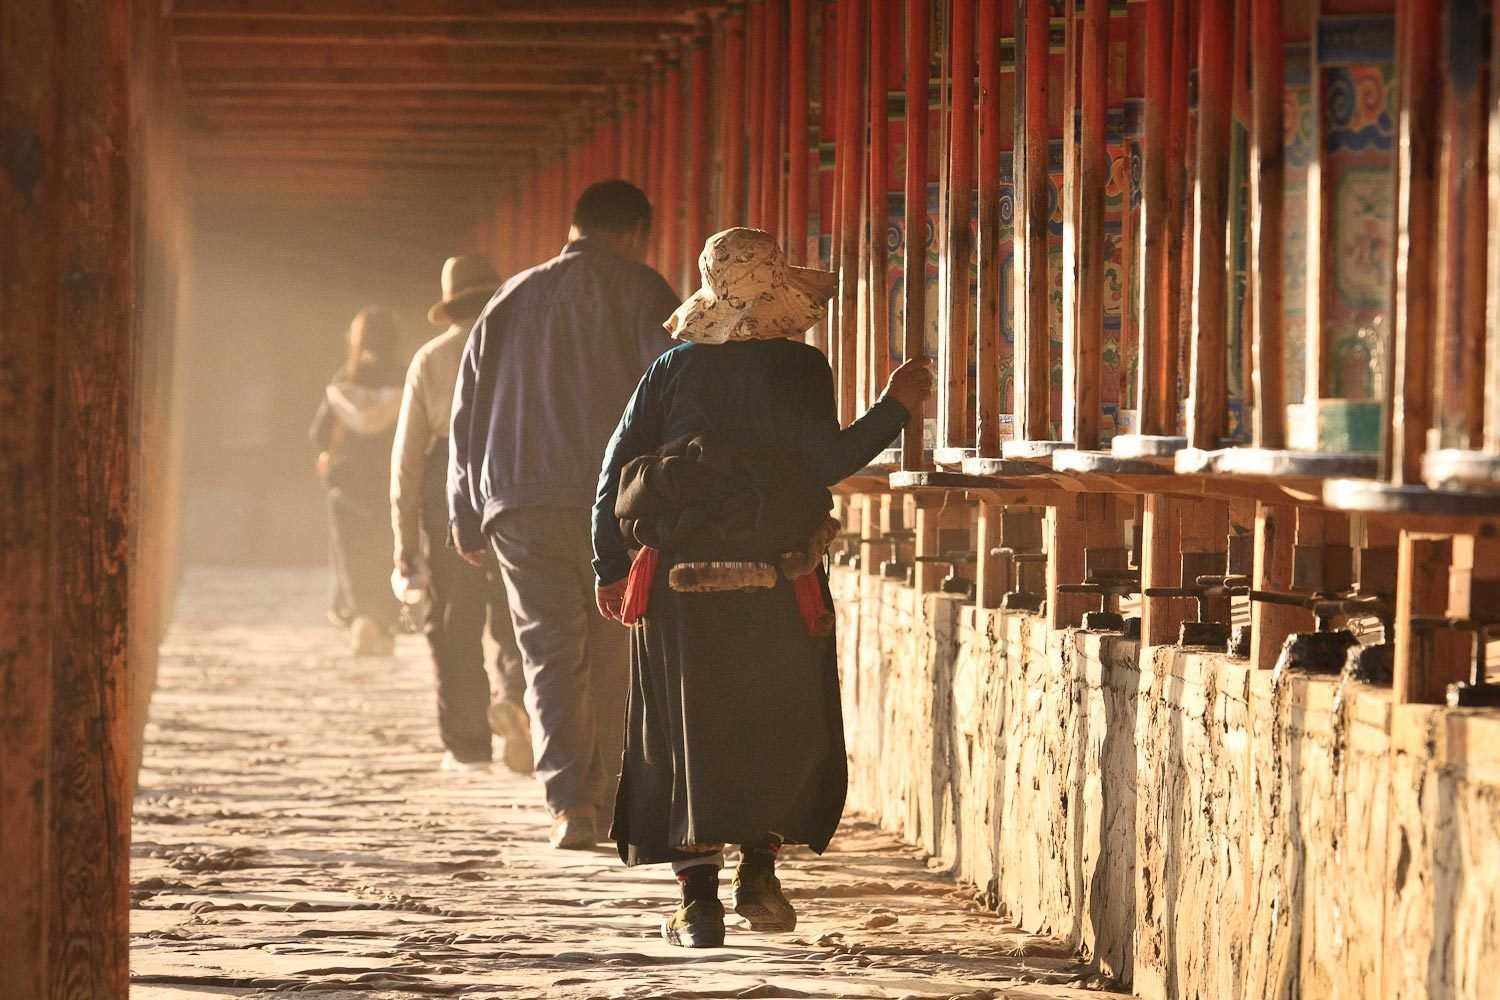 Devotees turning prayer wheels on the kora surrounding Labrang Monastery, Xiahe, Gansu, China.